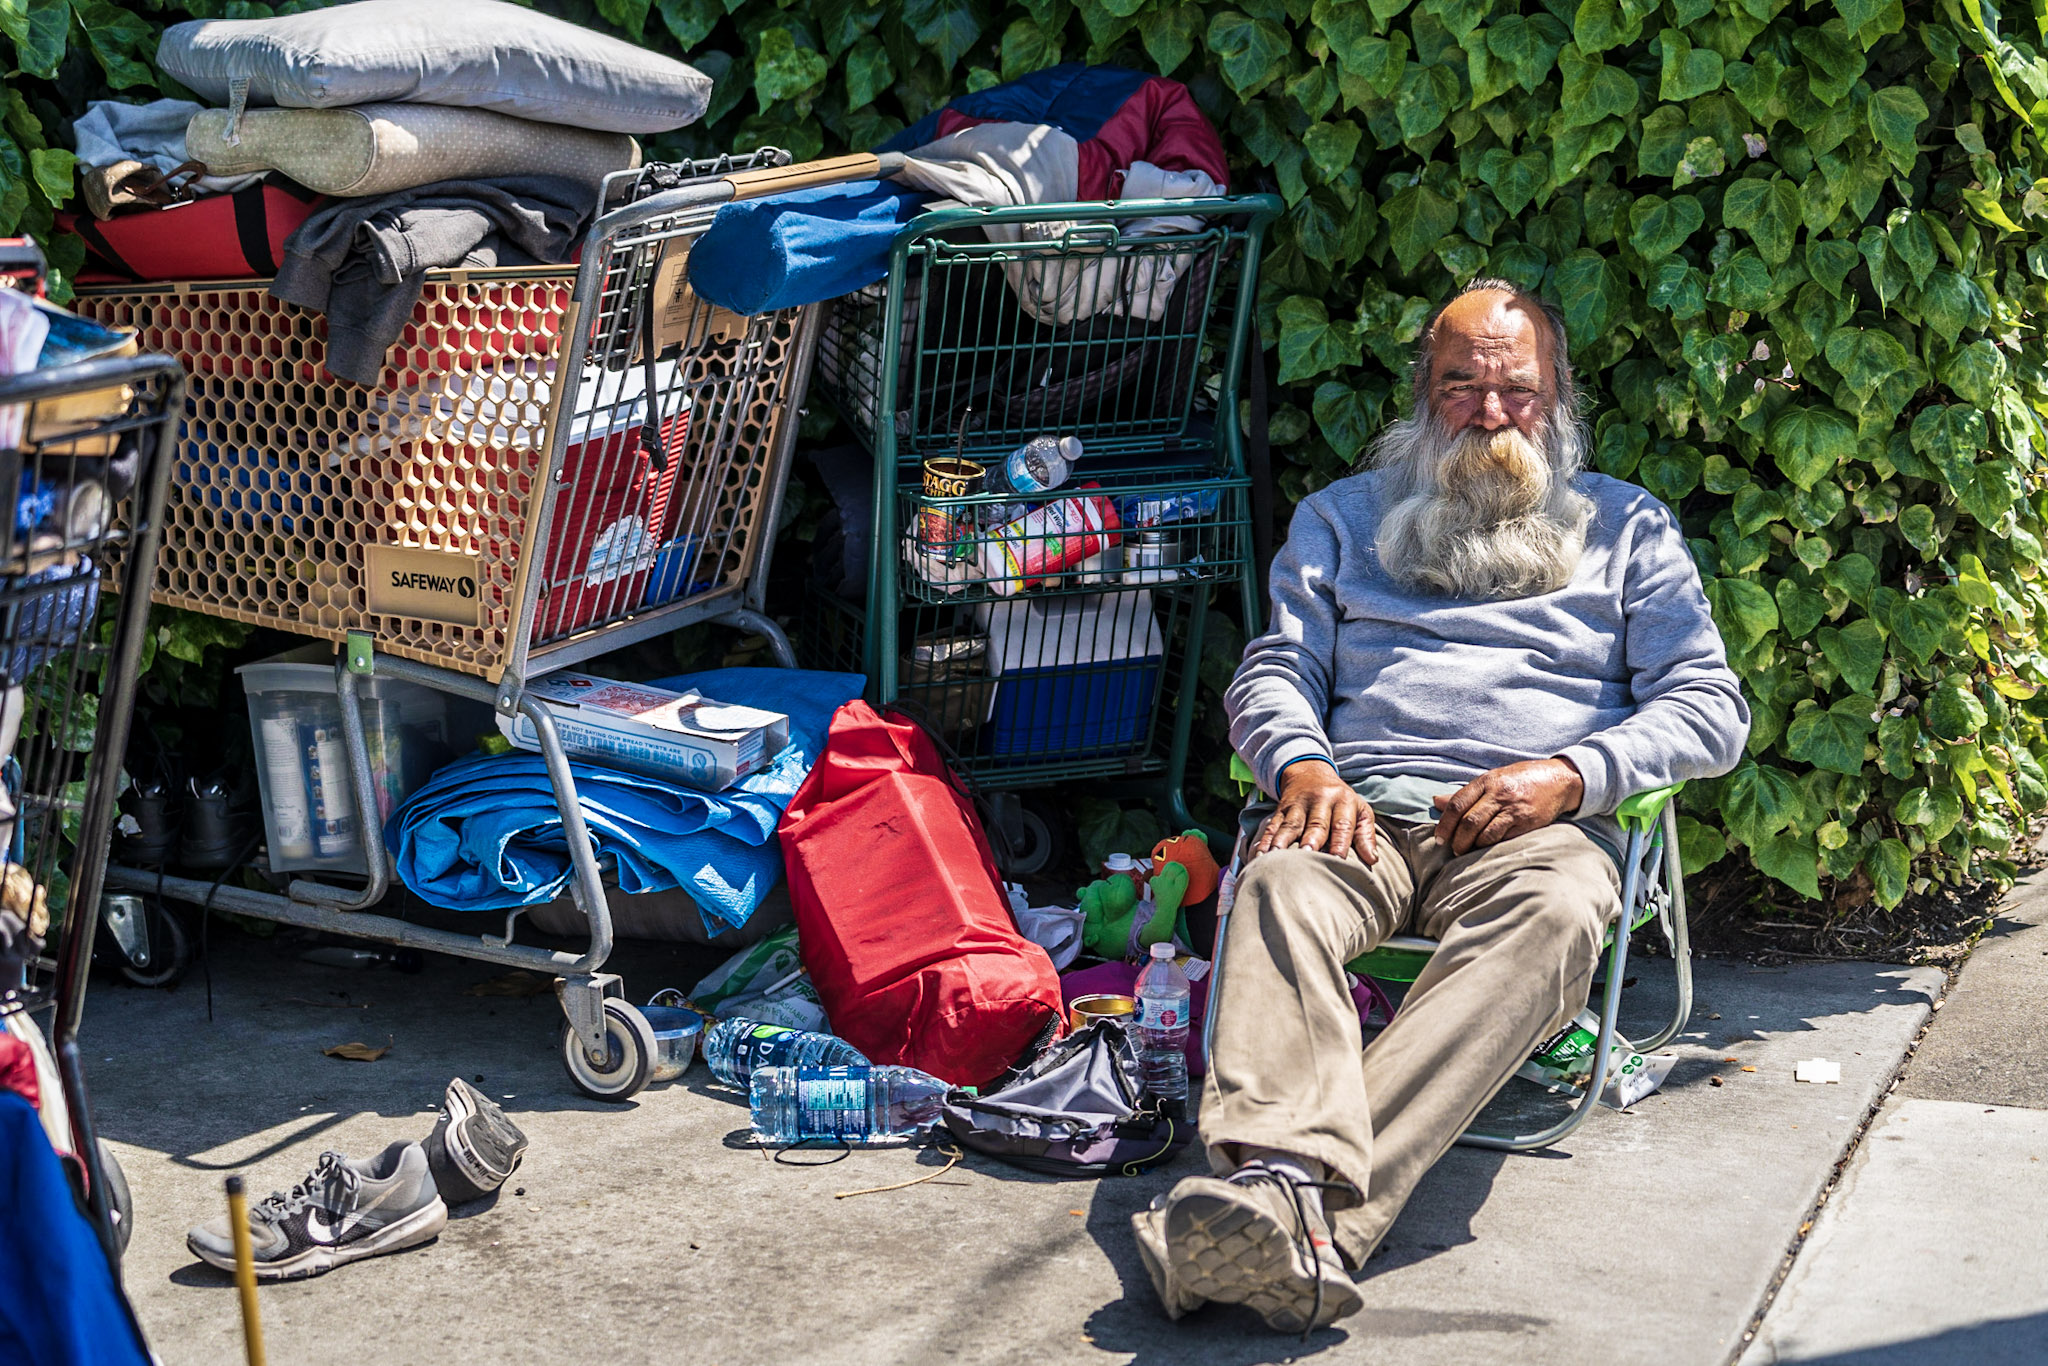 The Wheel of Fortune: Why Looking Down on the Poor and Disadvantaged Is a Bad Idea